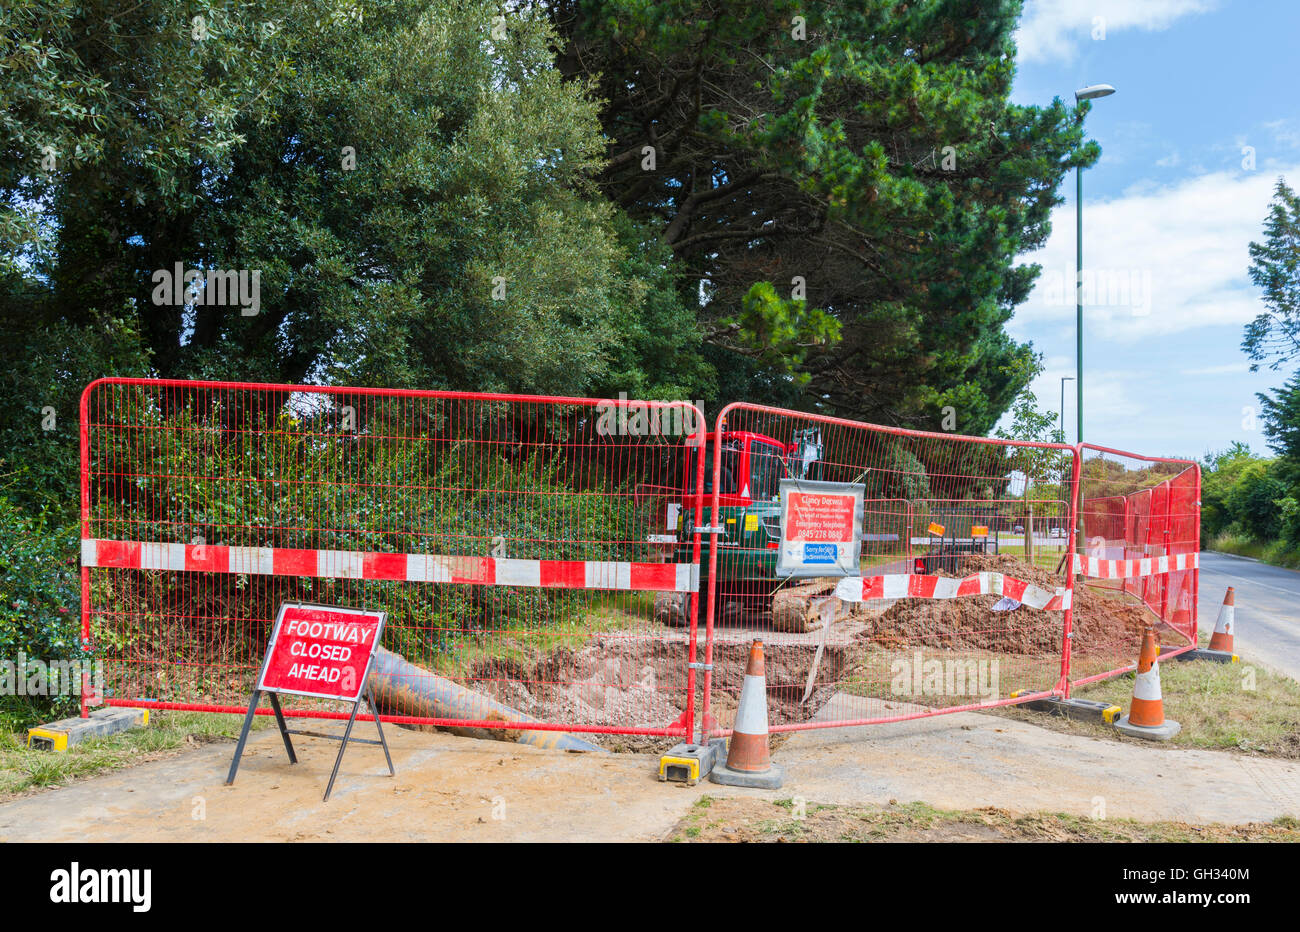 Pavement blocked due to works taking place. - Stock Image